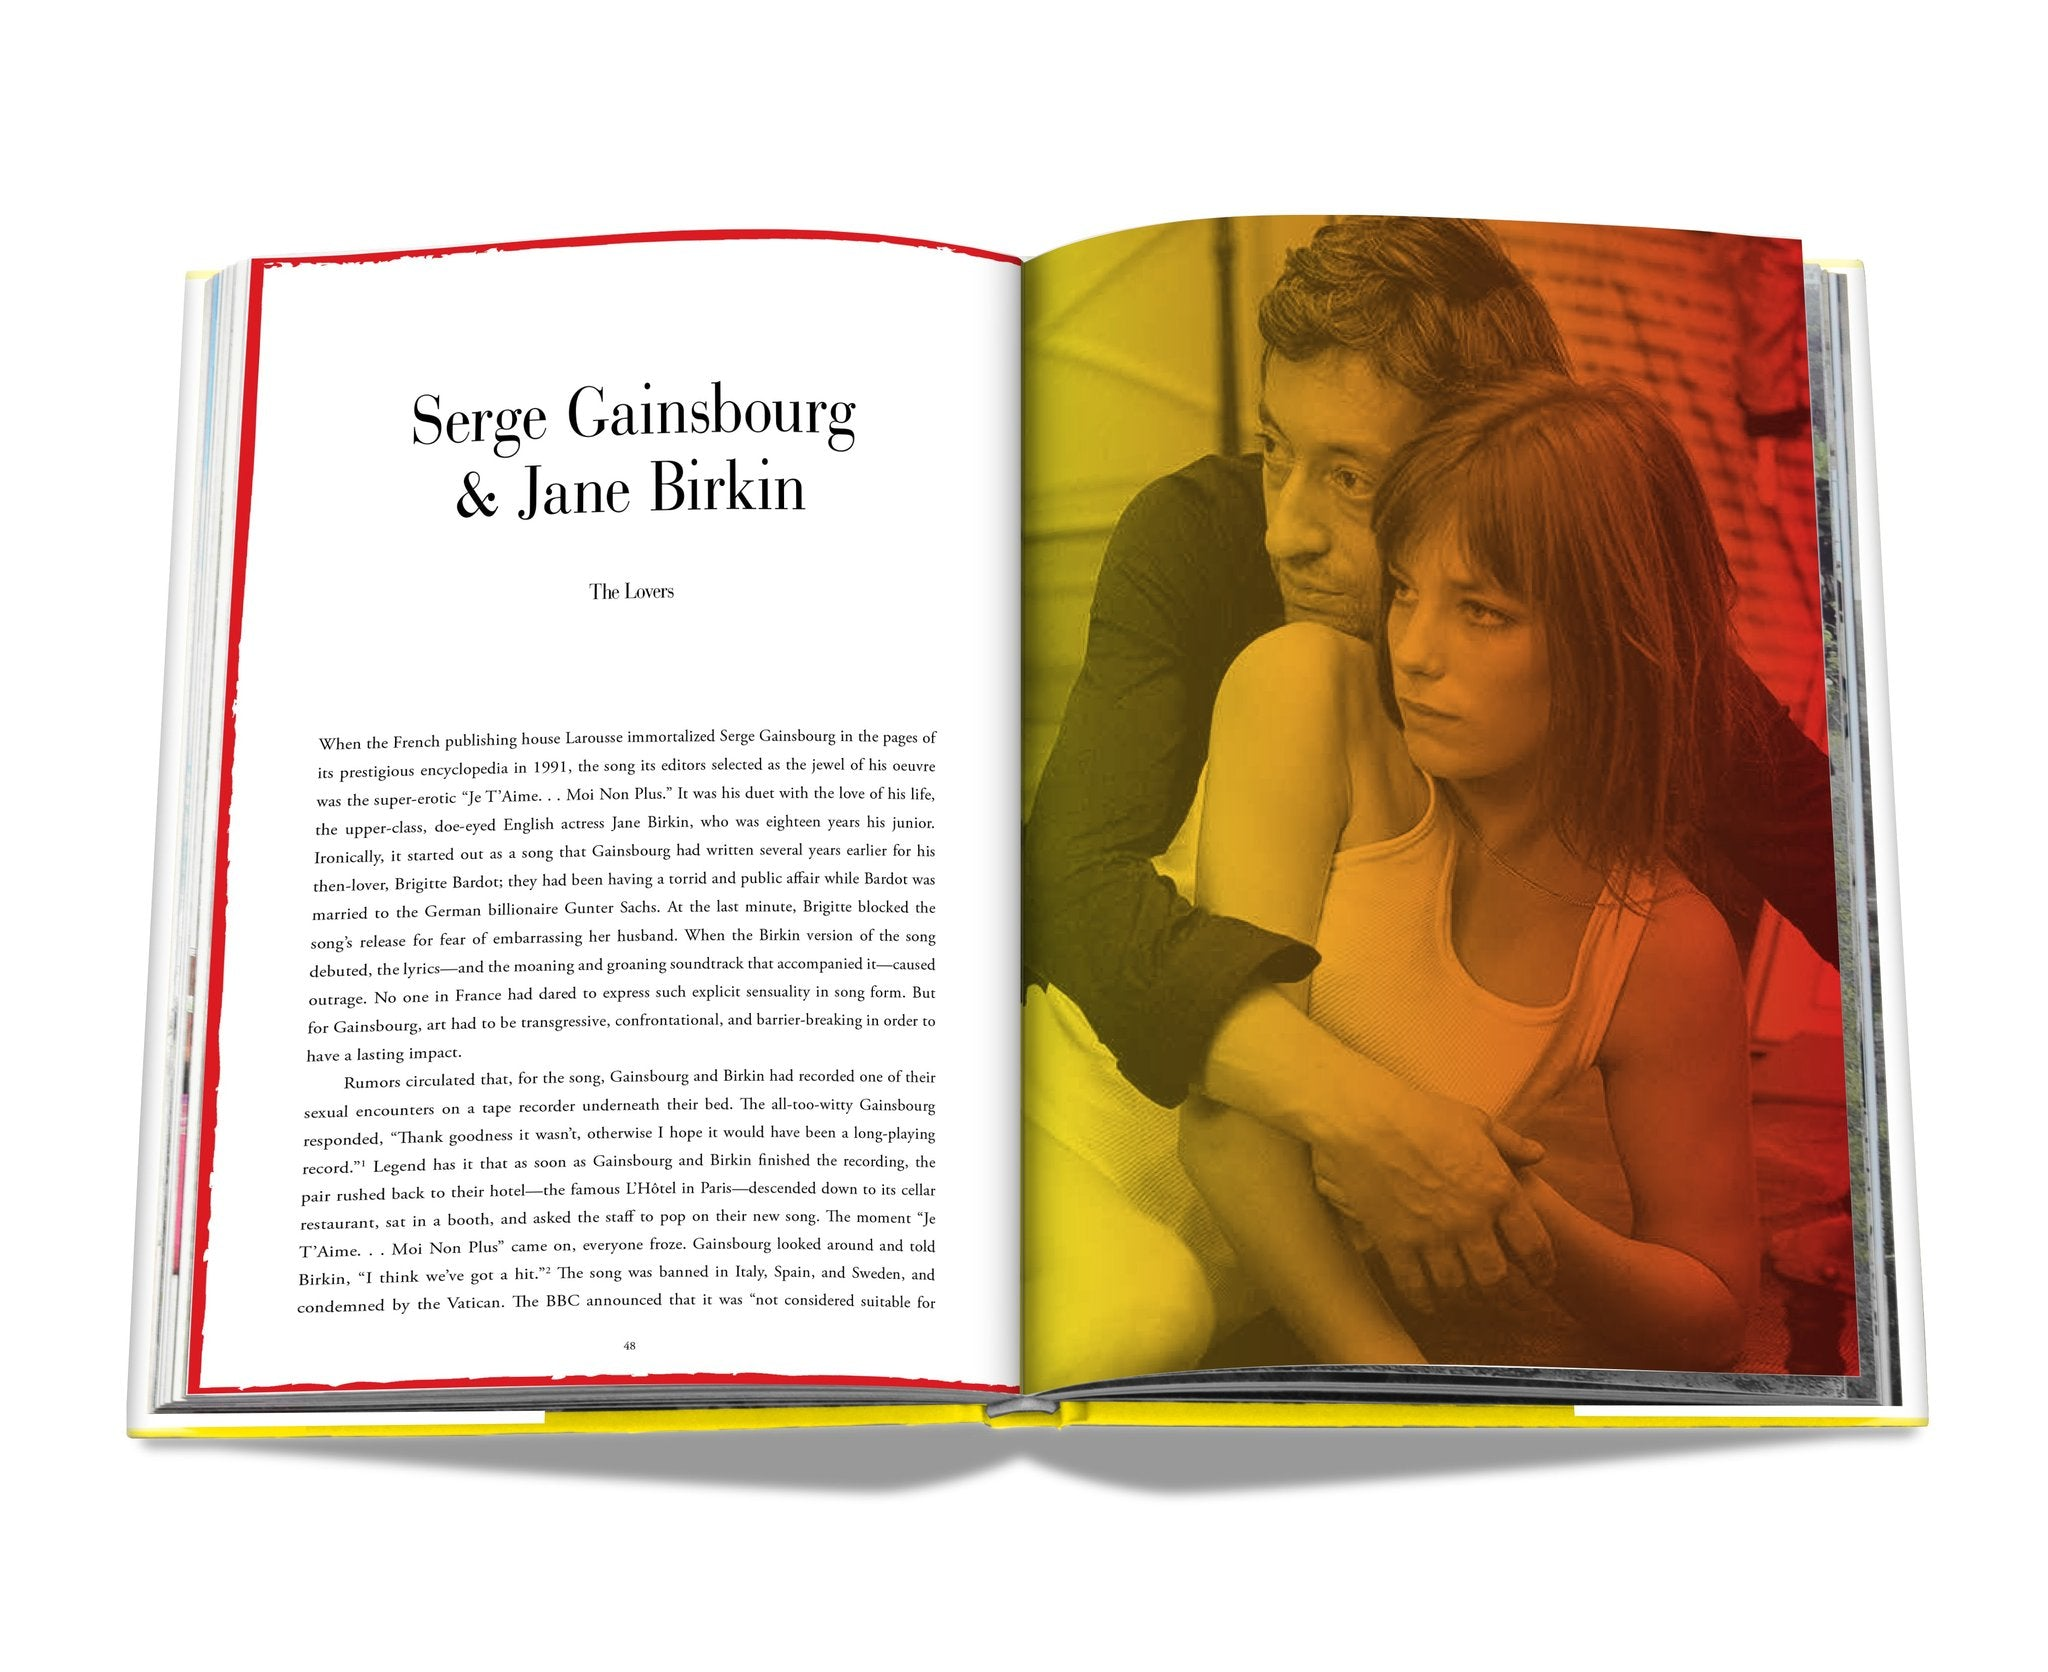 Book 'Creative Couples: Collaborations that changed History'